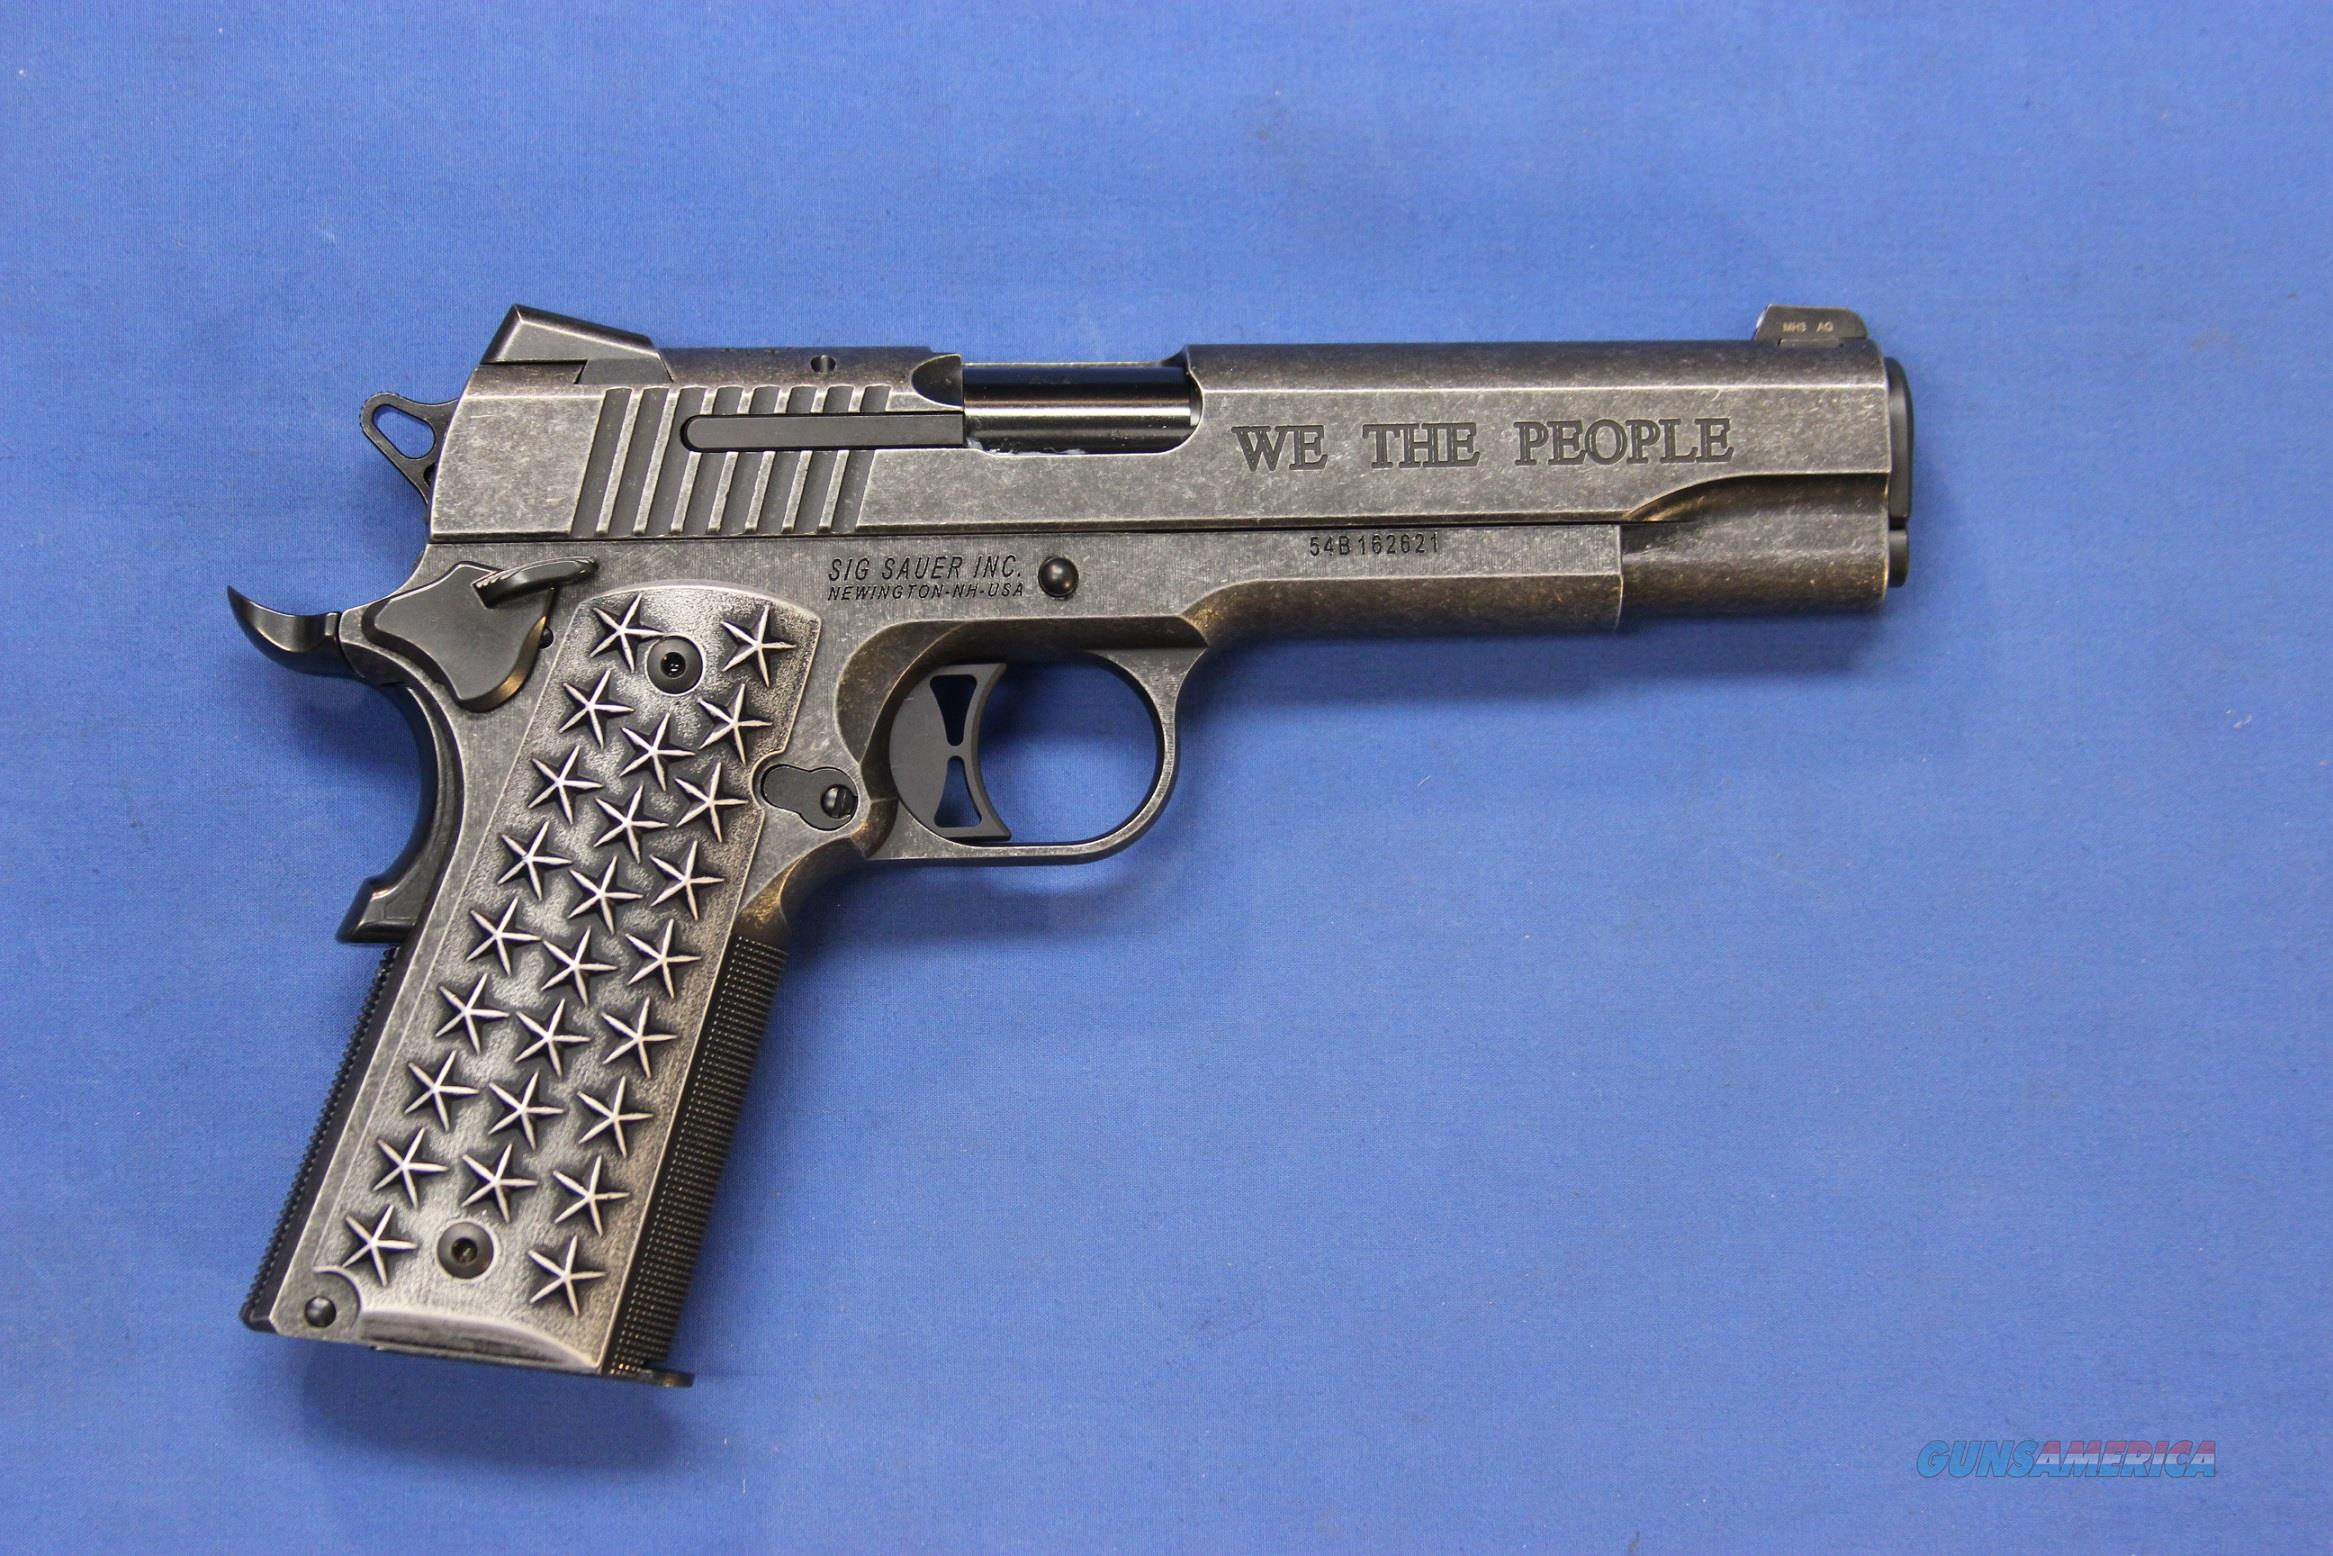 SIG SAUER 1911 WE THE PEOPLE .45 ACP - NEW IN BOX!  Guns > Pistols > Sig - Sauer/Sigarms Pistols > 1911